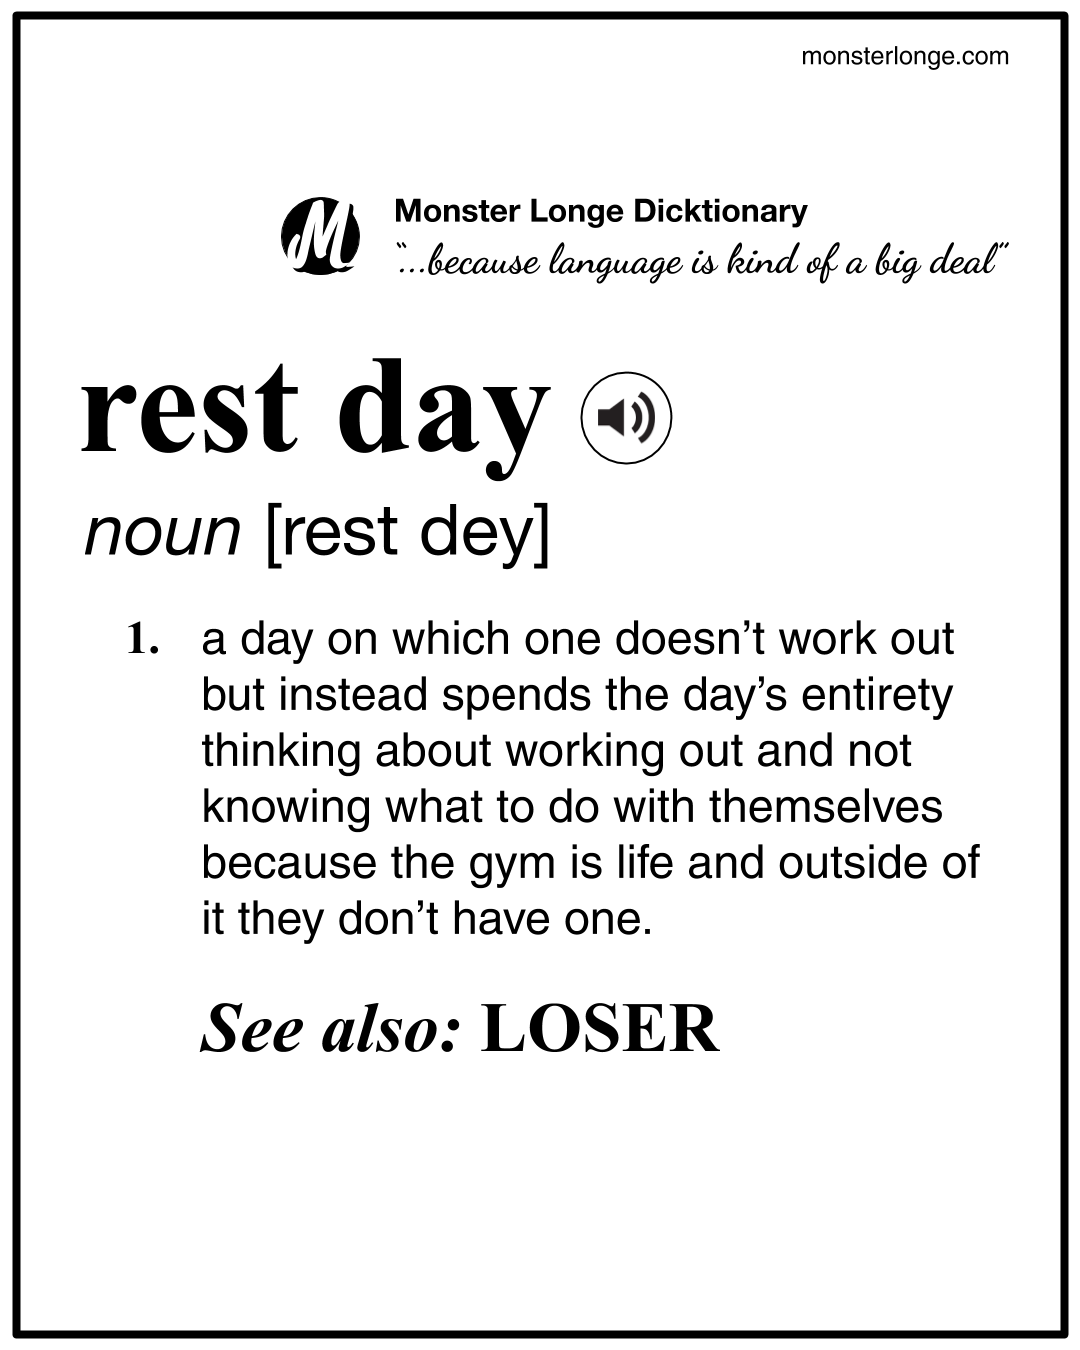 Rest Day: a day on which one doesn't work out but instead spends the day's entirety thinking about working out and not knowing what to do with themselves because the gym is life and outside of it they don't have one.